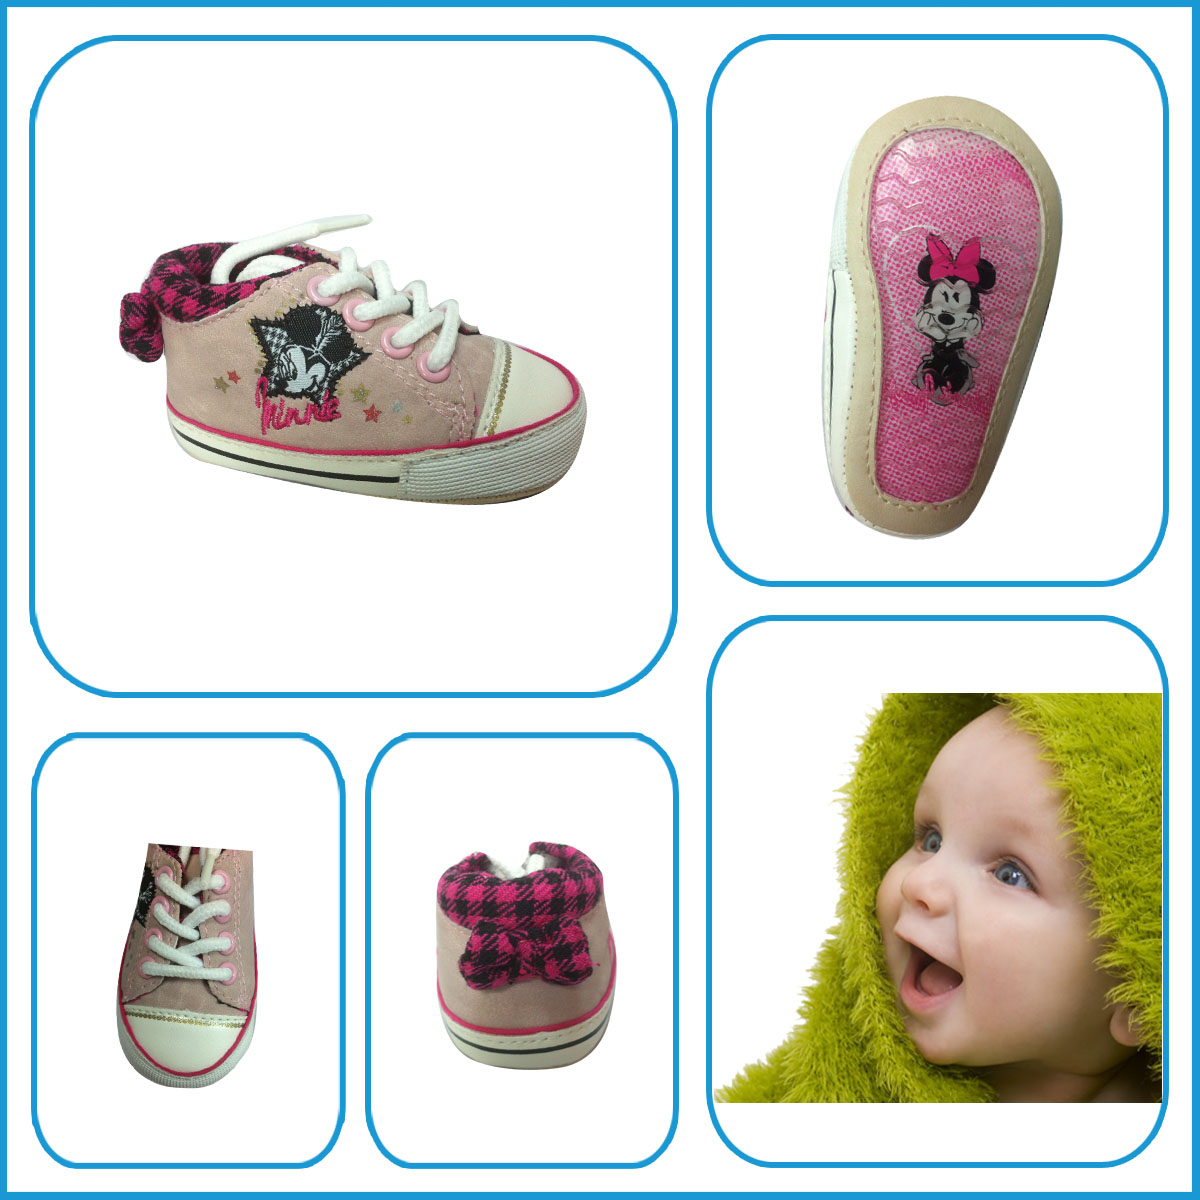 Hot selling Mikey Cartoon Pattern PVC Outsole Pink Lovely Infant Casual Shoes,PU upper